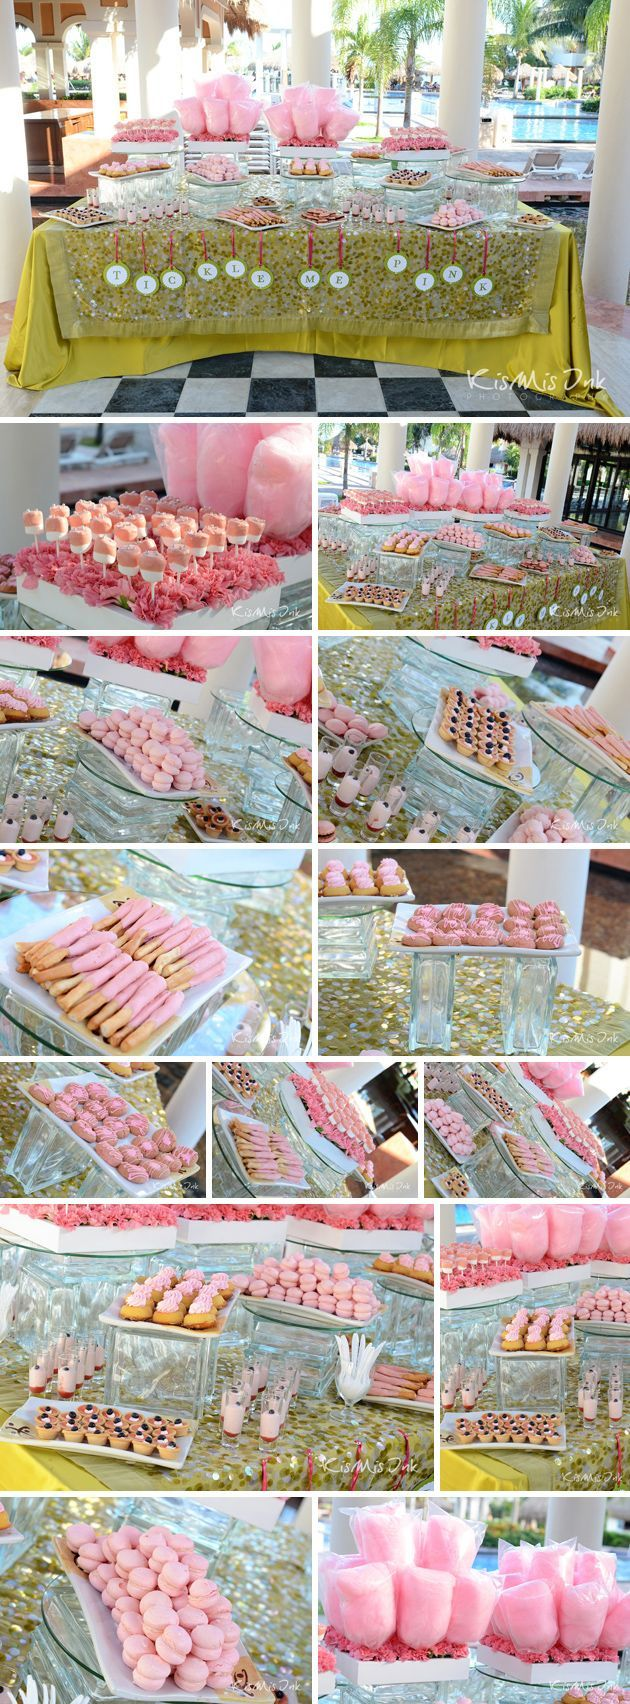 A tickled pink-themed candy favor table at an event held at Now Sapphire! #honeymoons, #destination weddings, #jazzydestinationstravel